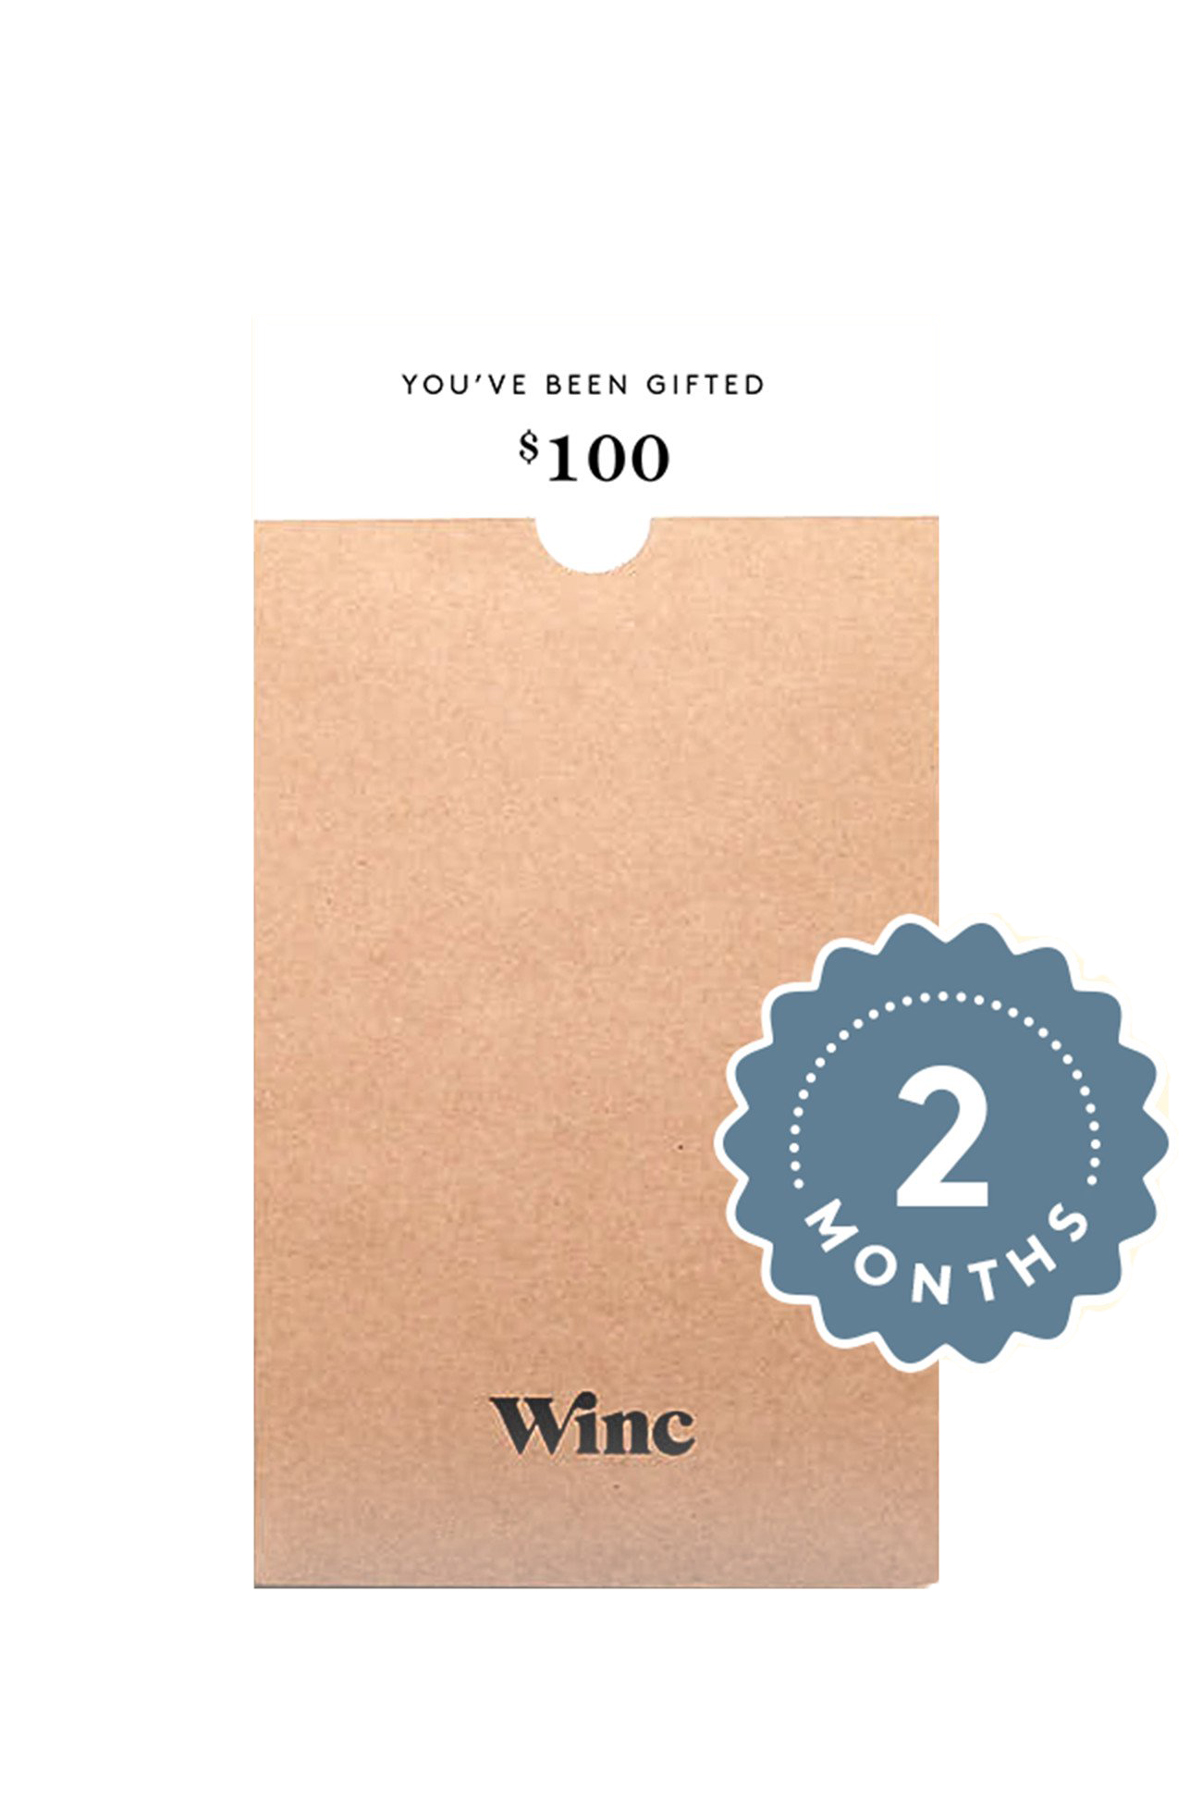 Best gifts for new moms - Winc wine club gift card